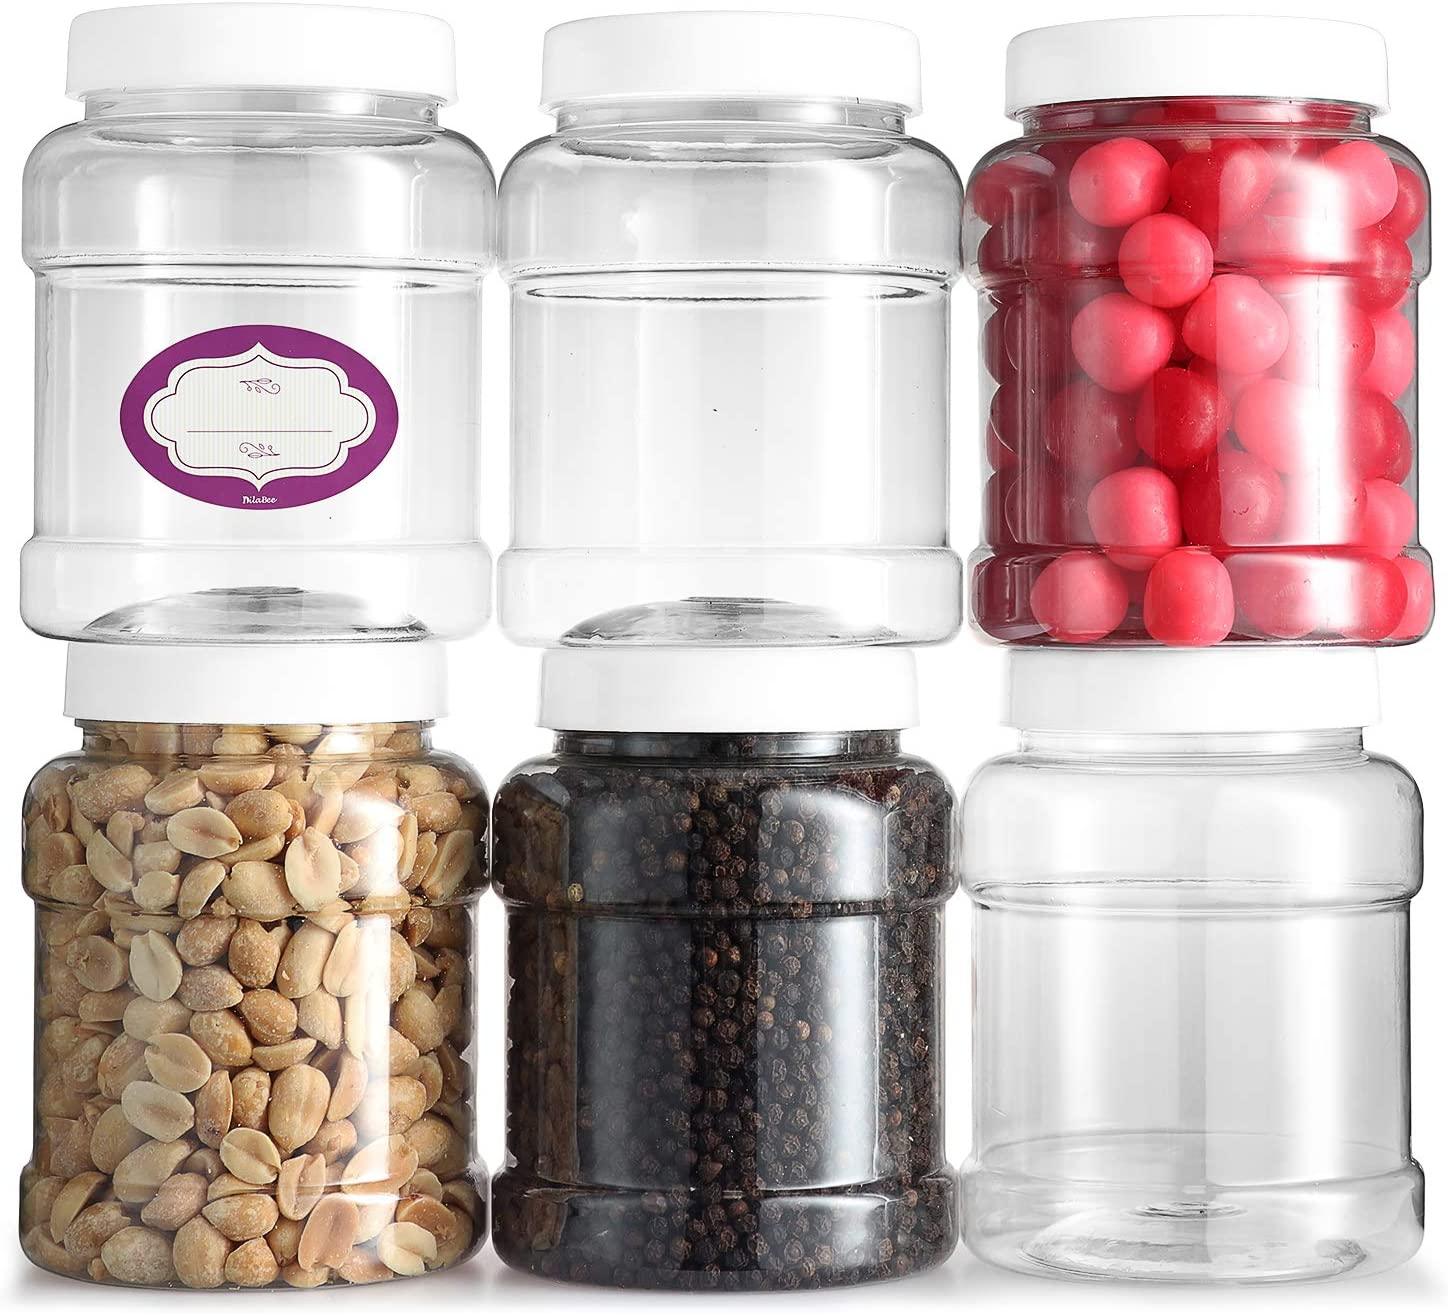 DilaBee Glass Storage Jars - Clear Glass Jars with Airtight Lids - Square Glass Jars for Food Storage with Lids and Chalk Labels- airtight glass Kitchen Jars for Canning, Fermenting, (2 Pack 128 Oz)